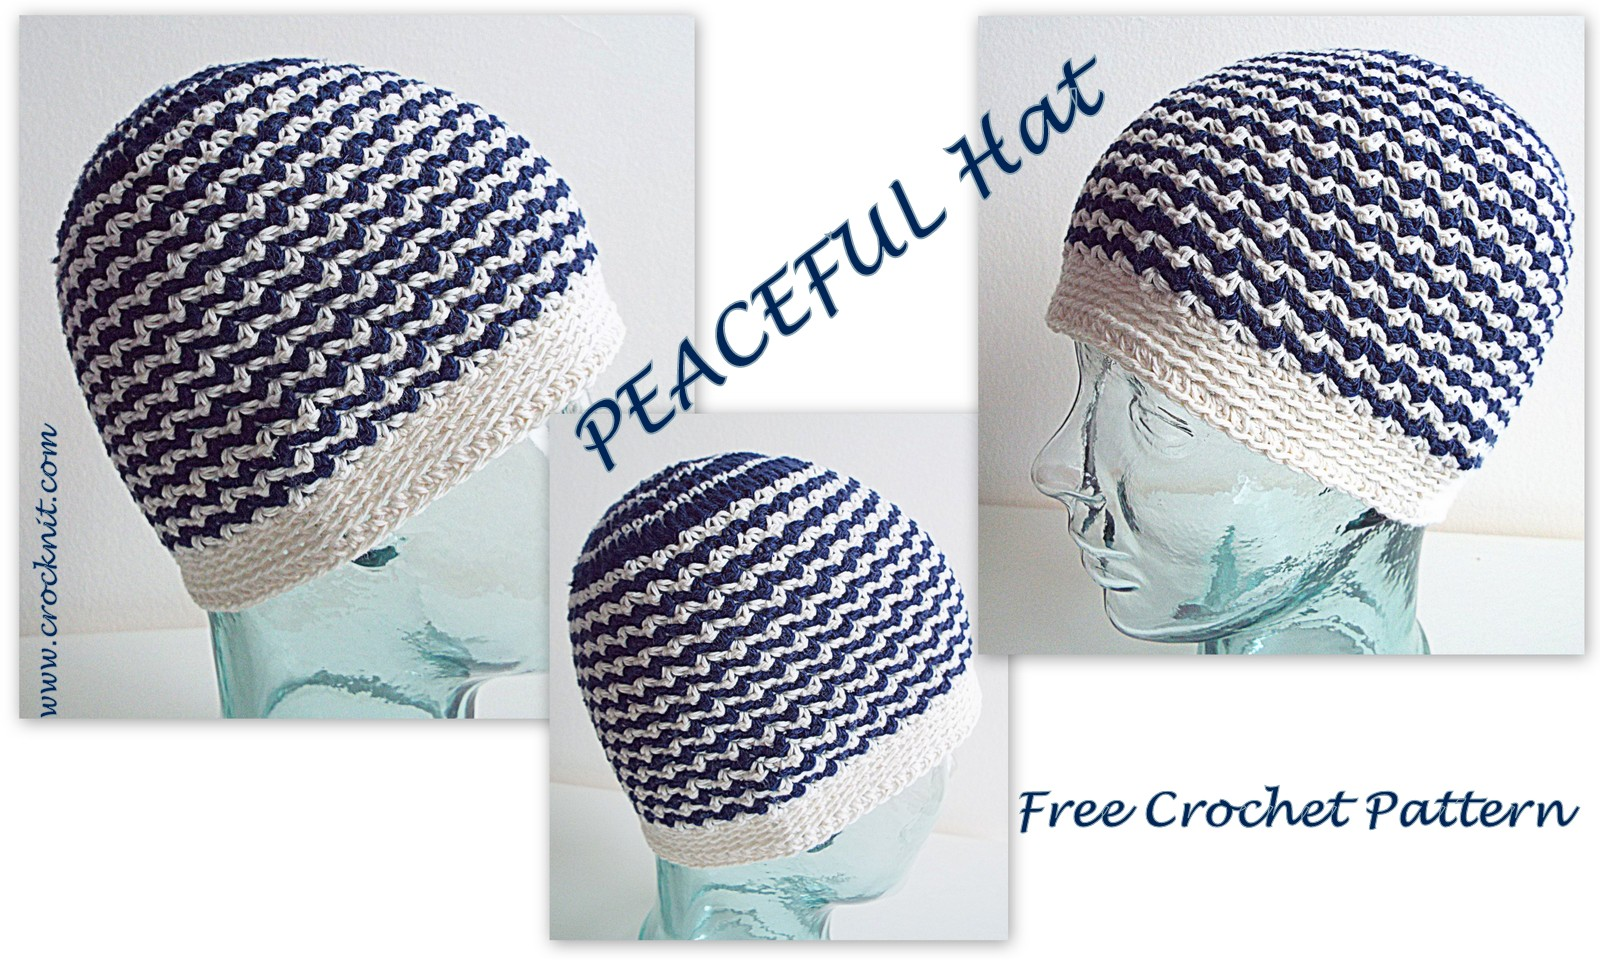 MICROCKNIT CREATIONS: SLEEP Hats Free Crochet Pattern #3 PEACEFUL HAT